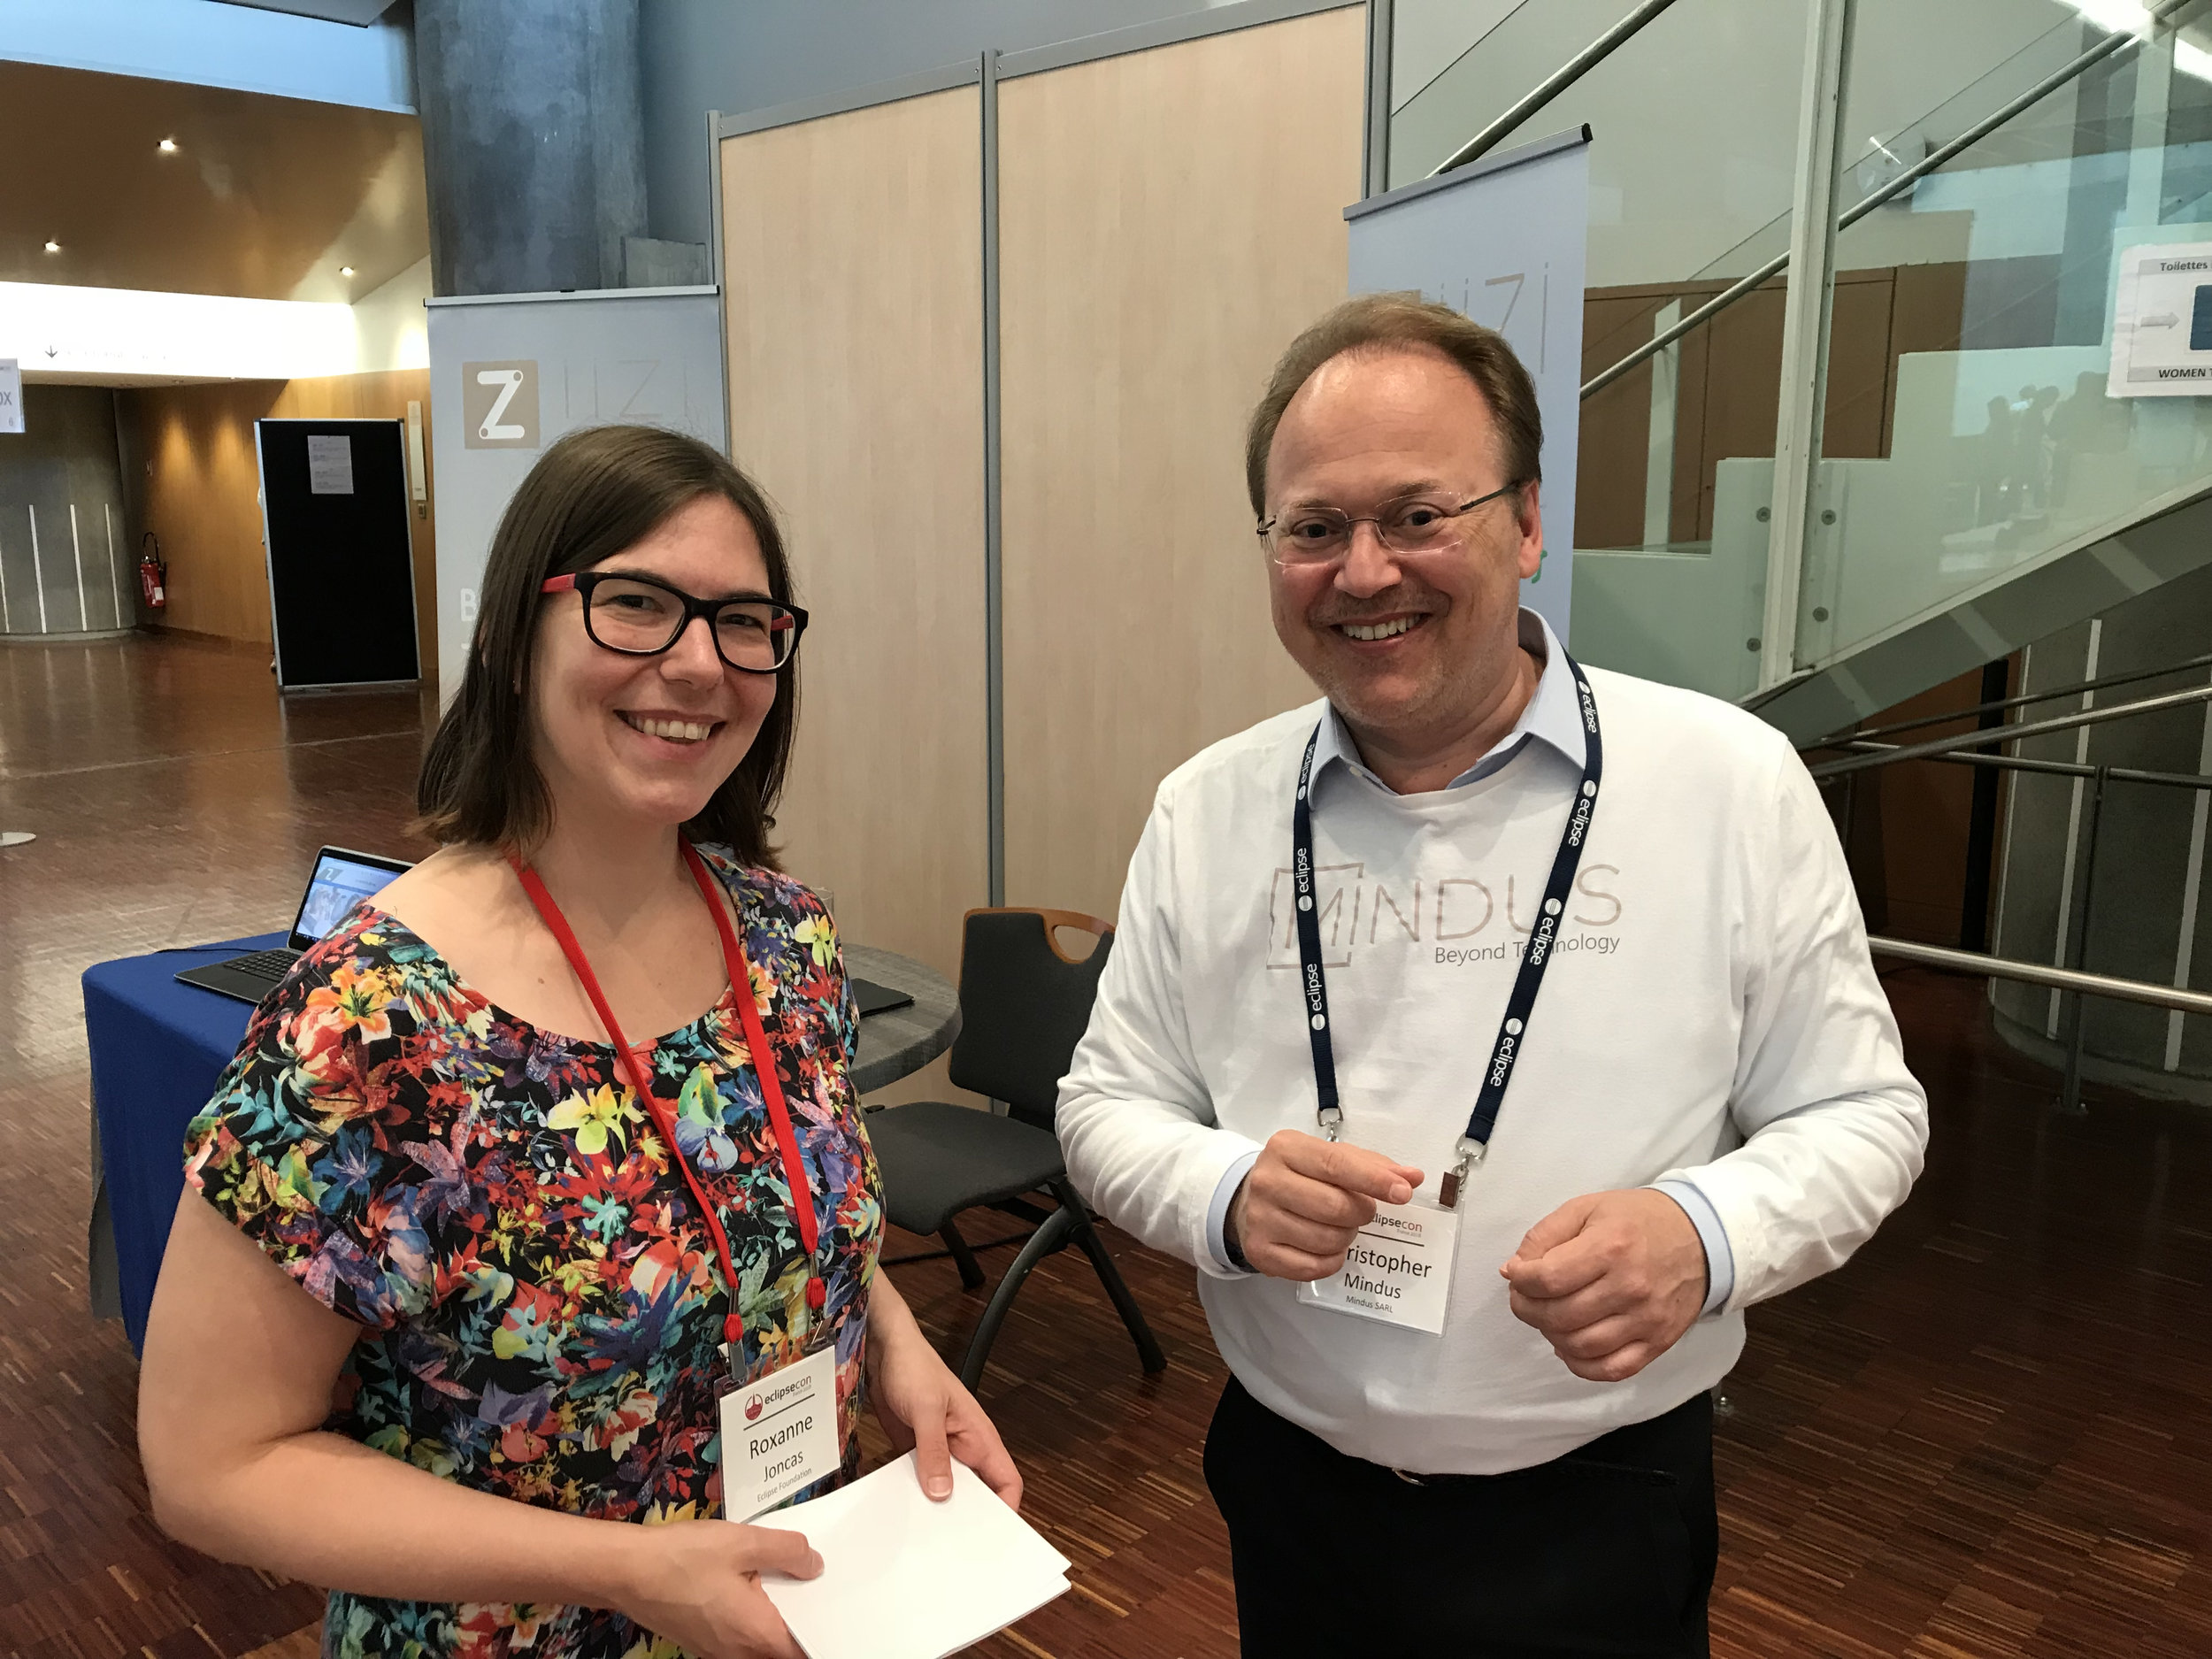 EclipseCon's Roxanne Joncas with Christopher Mindus